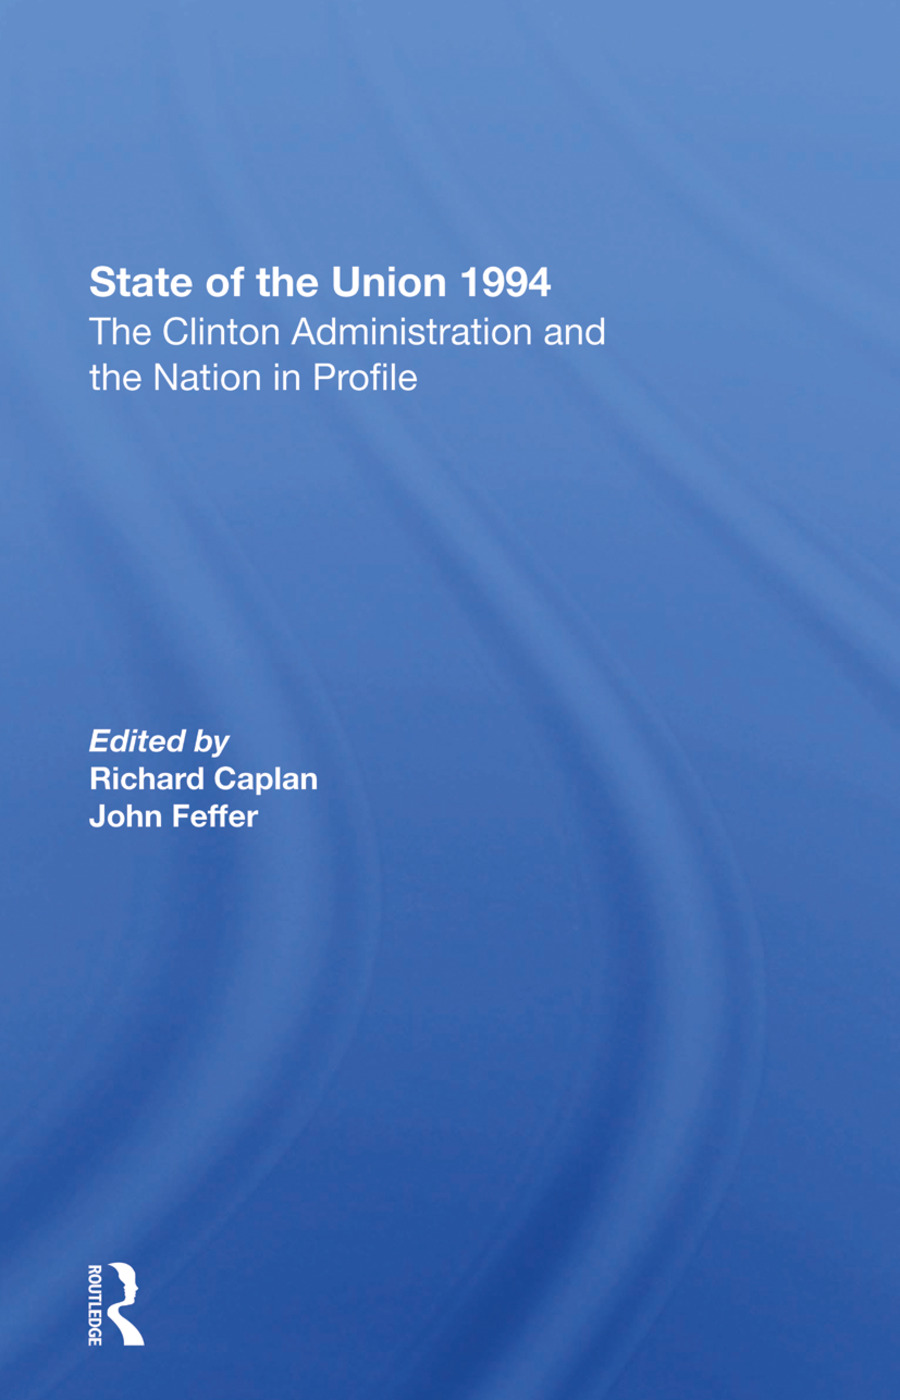 State Of The Union 1994: The Clinton Administration And The Nation In Profile, 1st Edition (Hardback) book cover